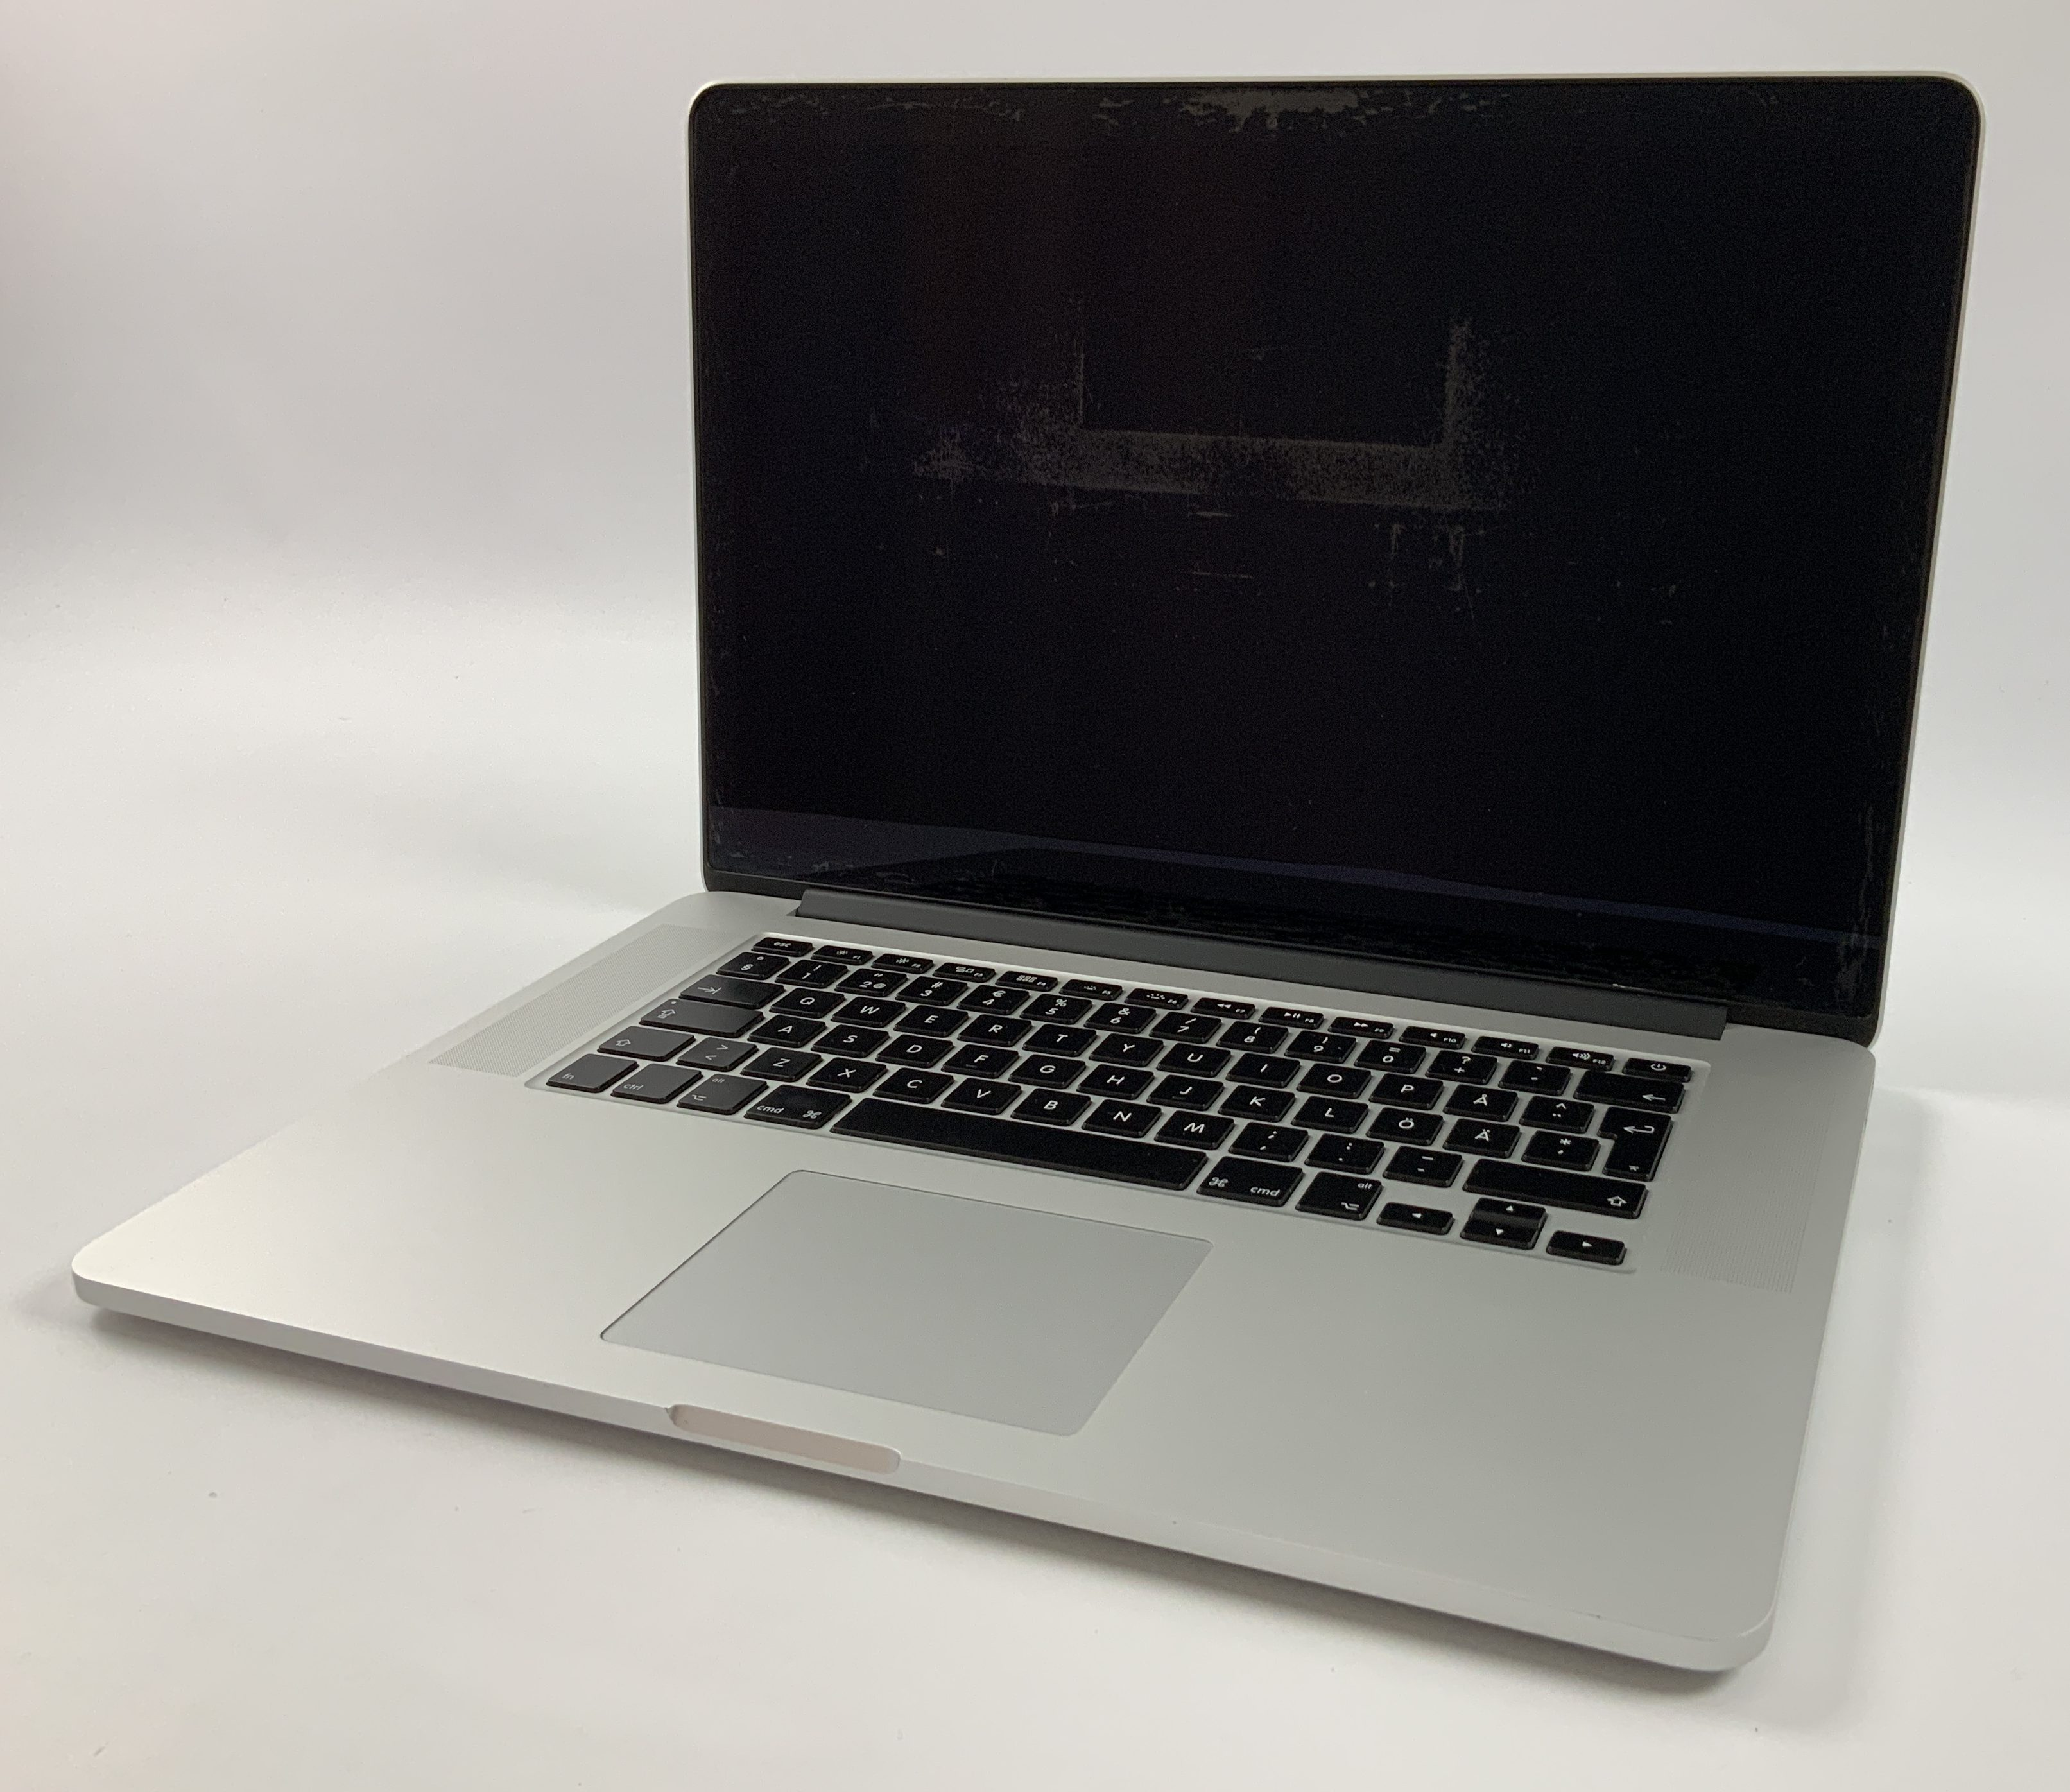 "MacBook Pro Retina 15"" Mid 2014 (Intel Quad-Core i7 2.5 GHz 16 GB RAM 512 GB SSD), Intel Quad-Core i7 2.5 GHz, 16 GB RAM, 512 GB SSD, Bild 1"